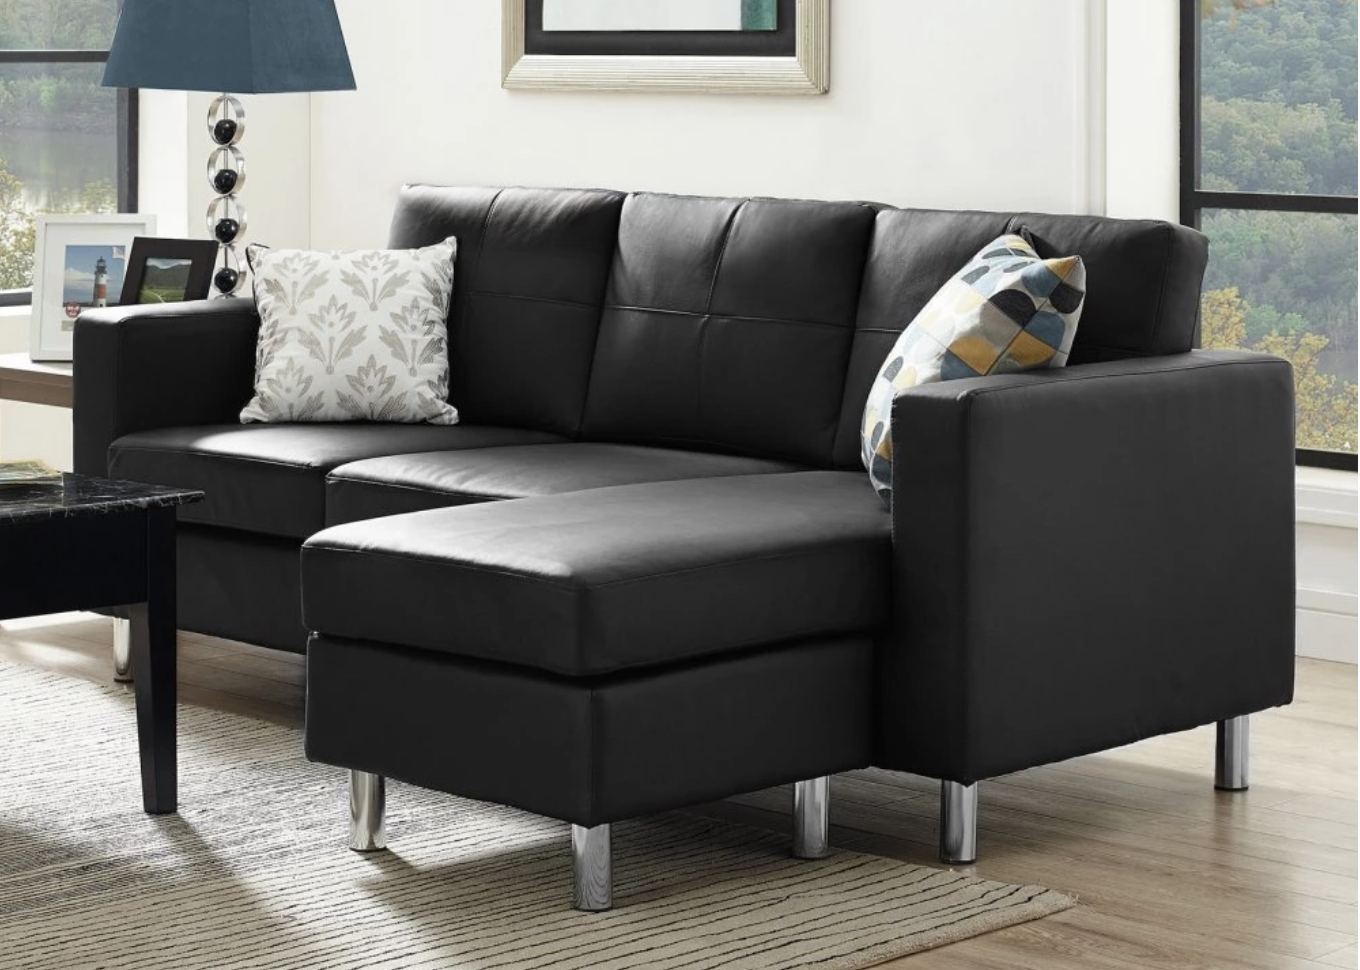 Canada Sectional Sofas For Small Spaces Regarding Newest 75 Modern Sectional Sofas For Small Spaces (2018) (View 5 of 20)